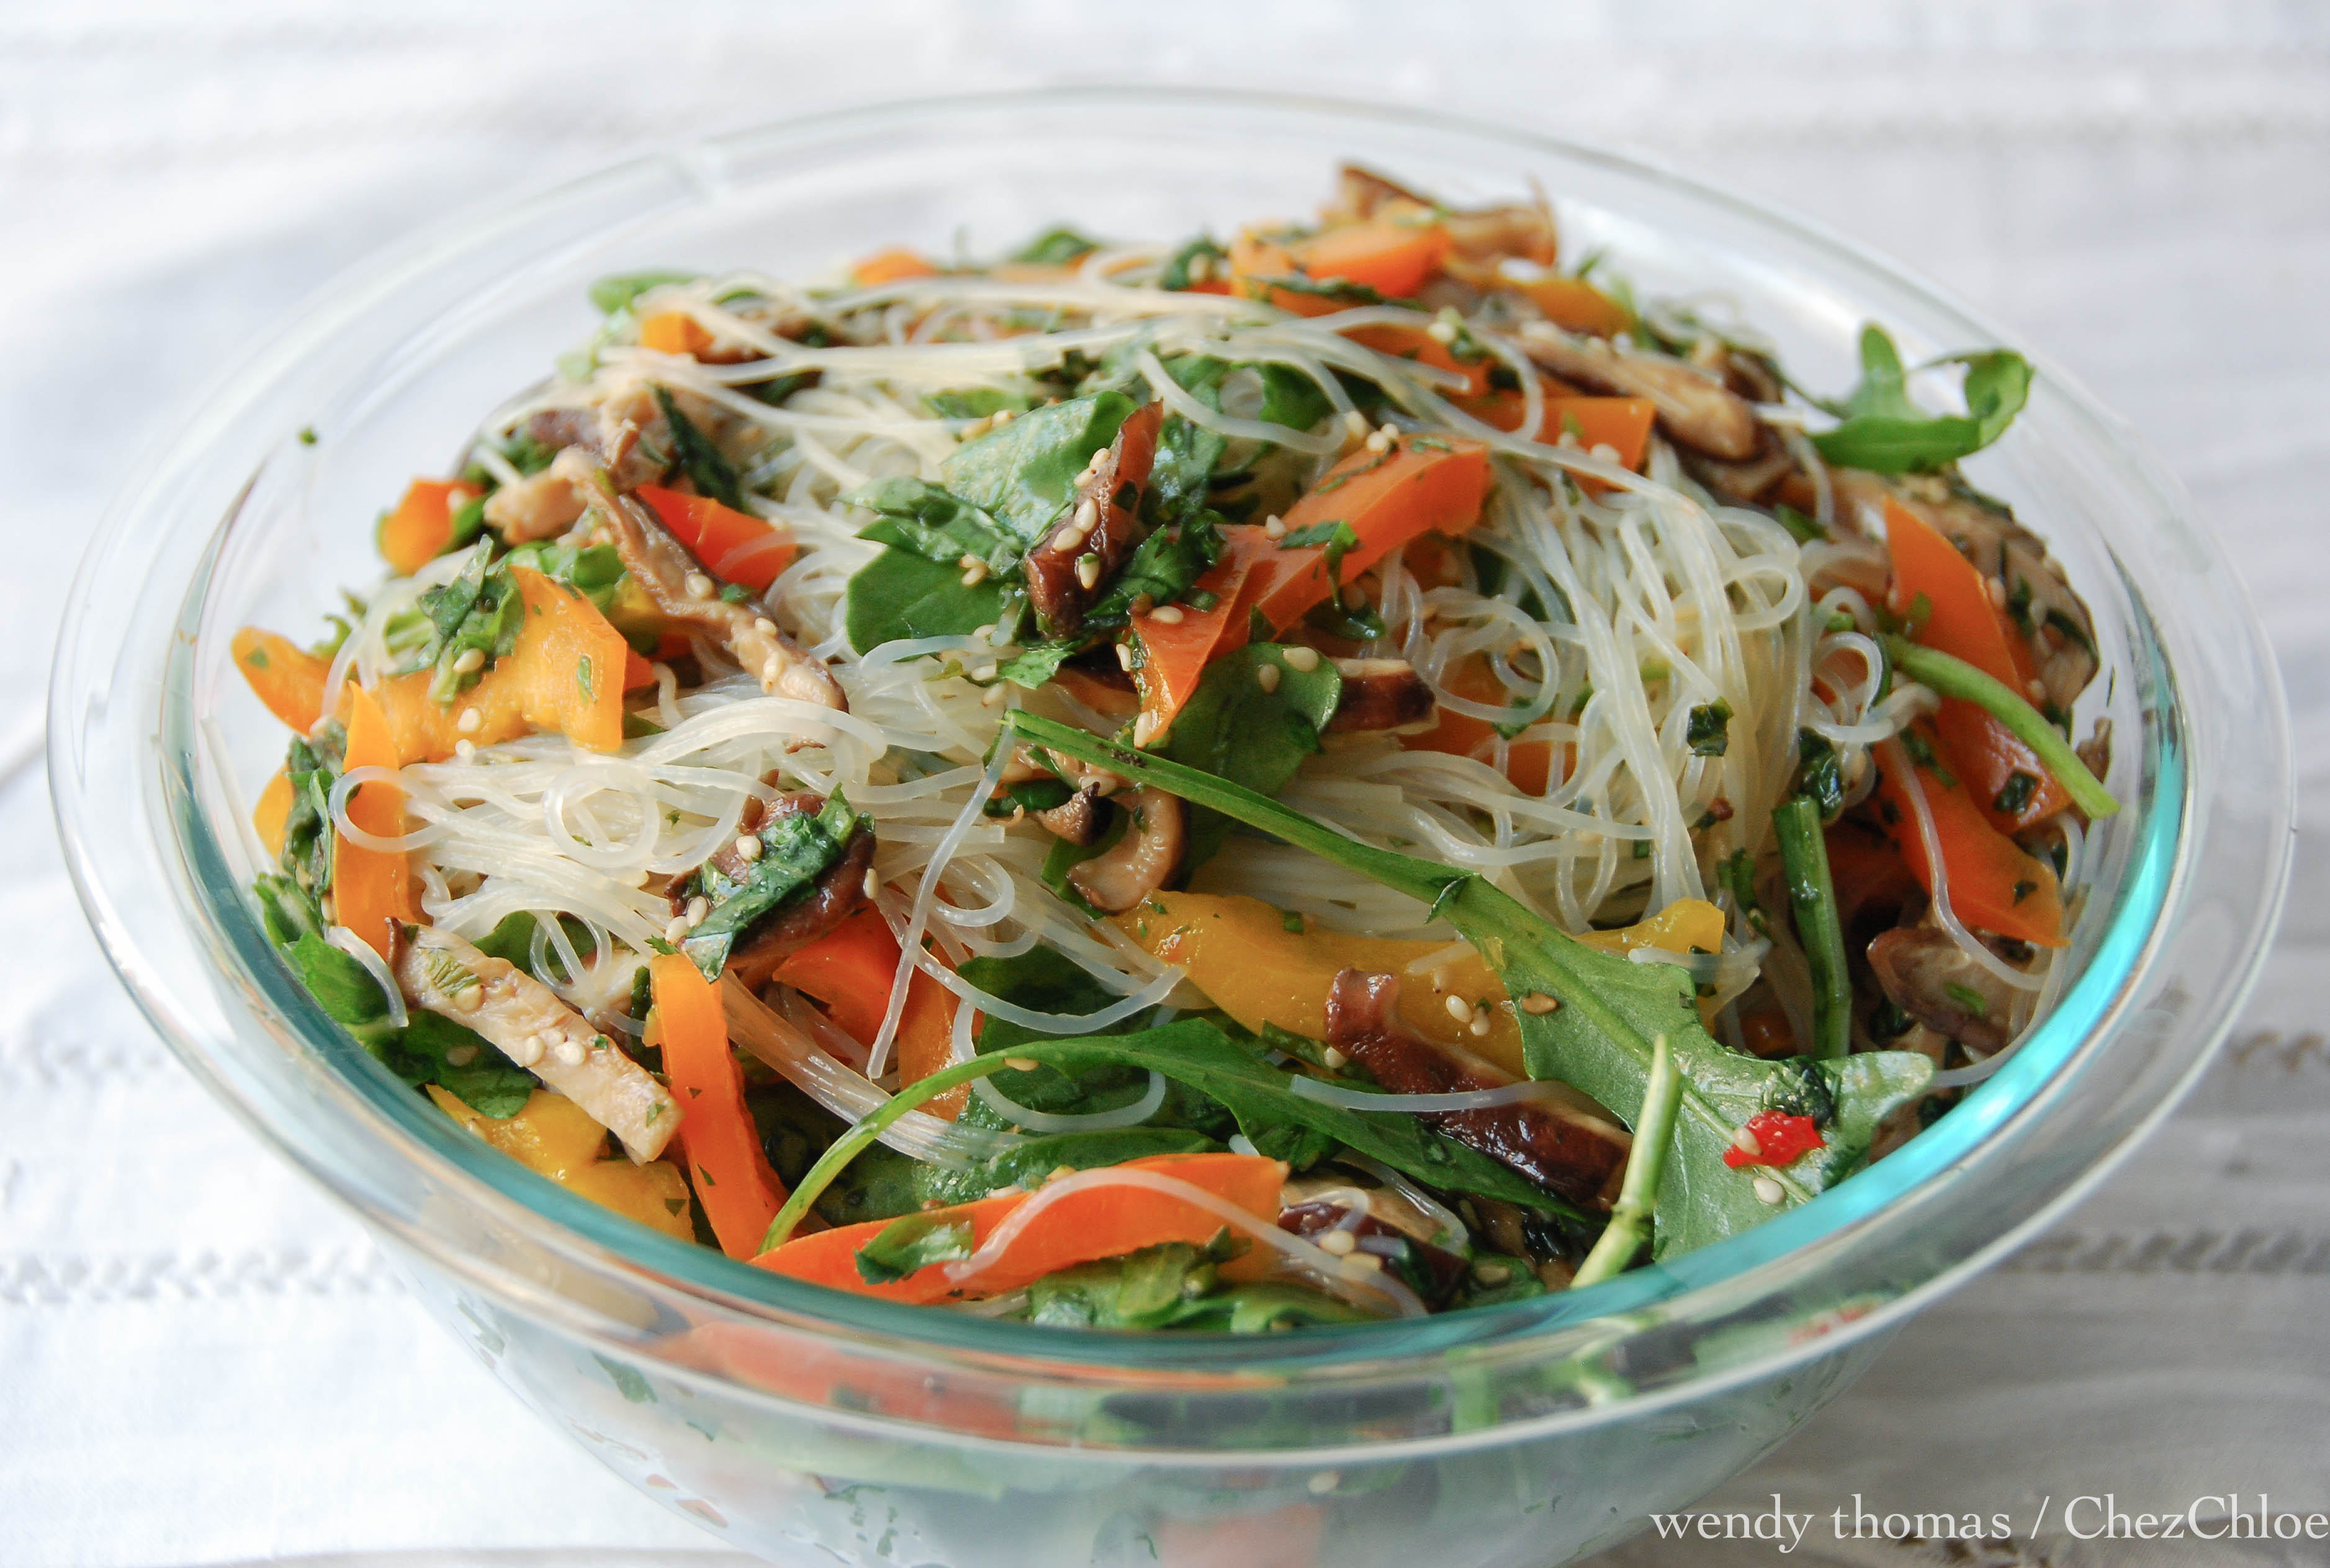 Cellophane Noodles With Pork And Thai Basil